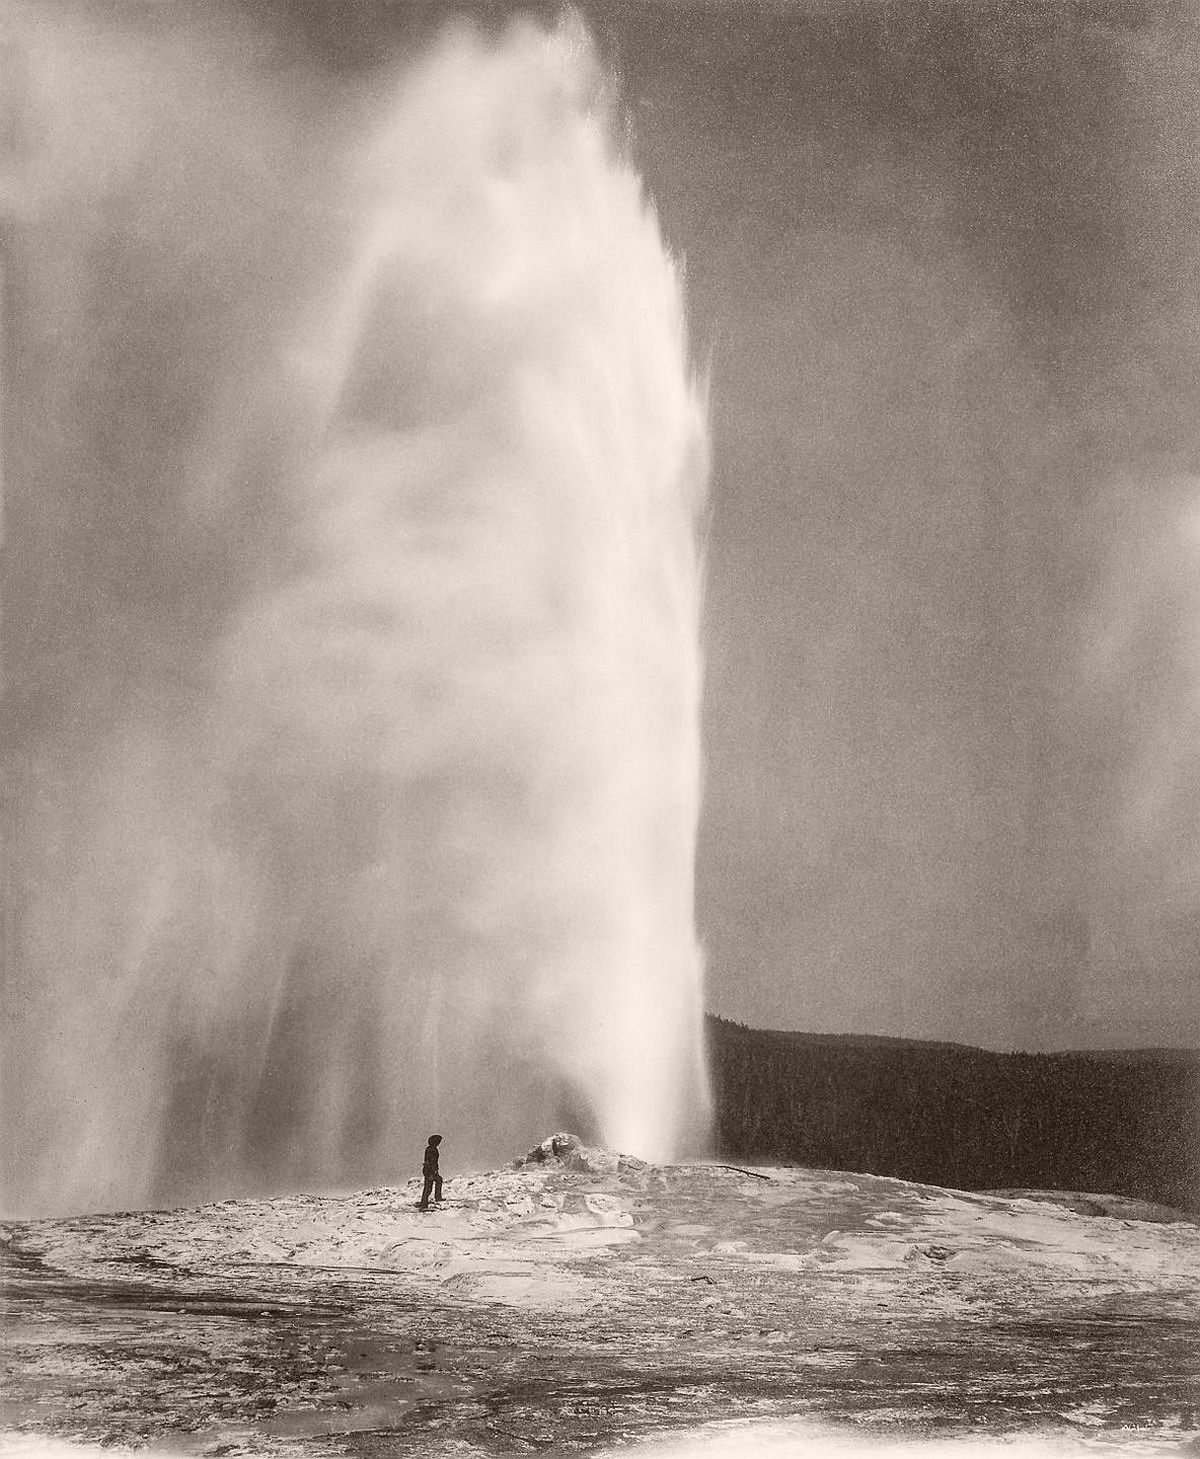 A member of a government geological survey stands next to Old Faithful in Yellowstone, two years before its designation as a National Park, 1870. (GraphicaArtis/Getty Images)